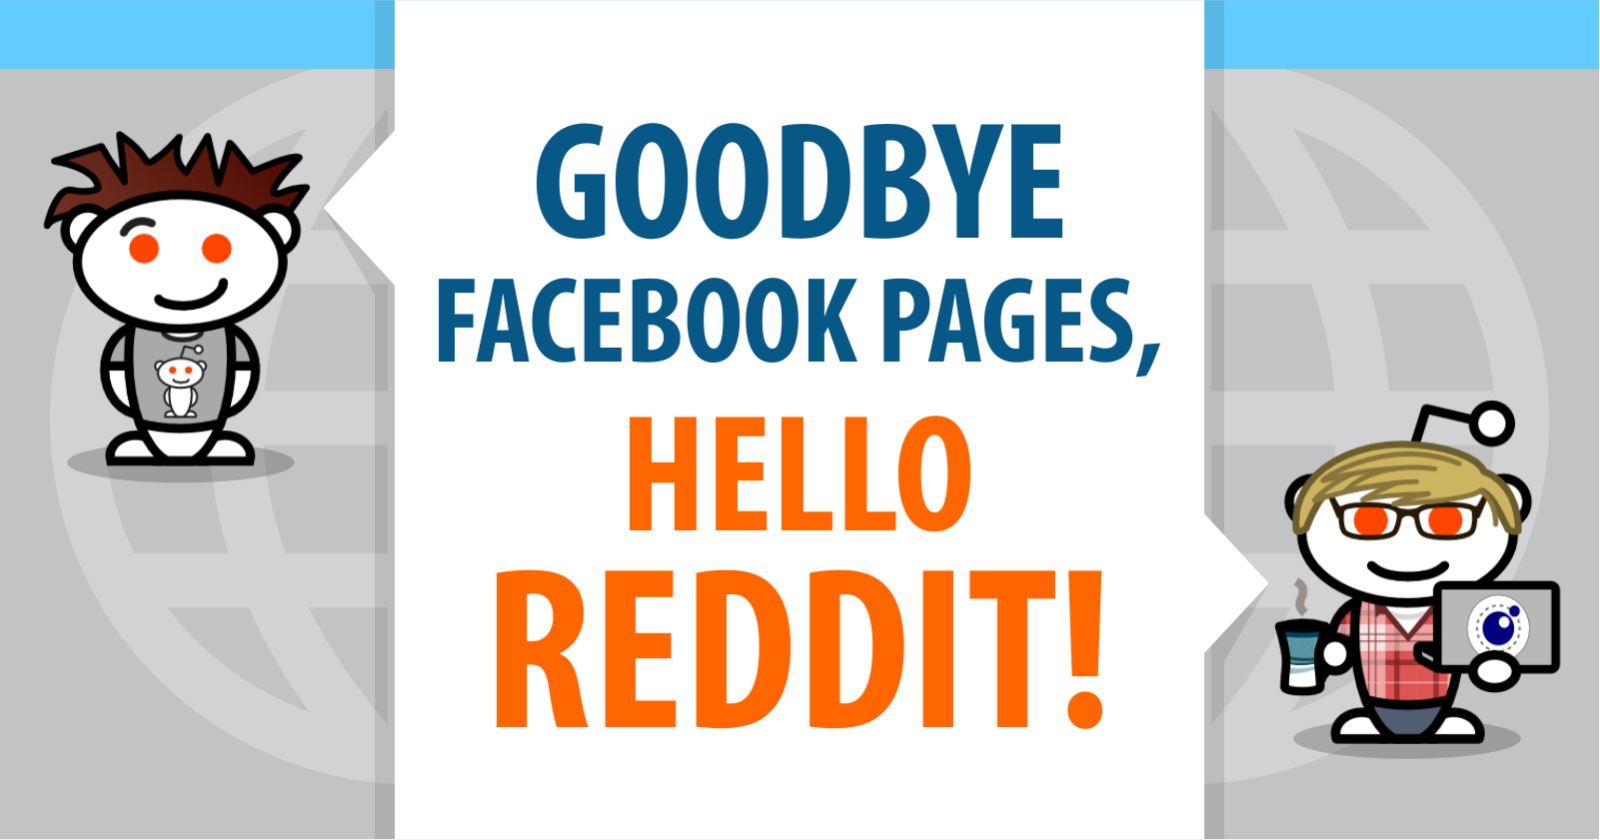 Is it hi, Reddit and bye, Facebook? ��https://t.co/Xmtd5ZAHeL https://t.co/97NWDPzDFn